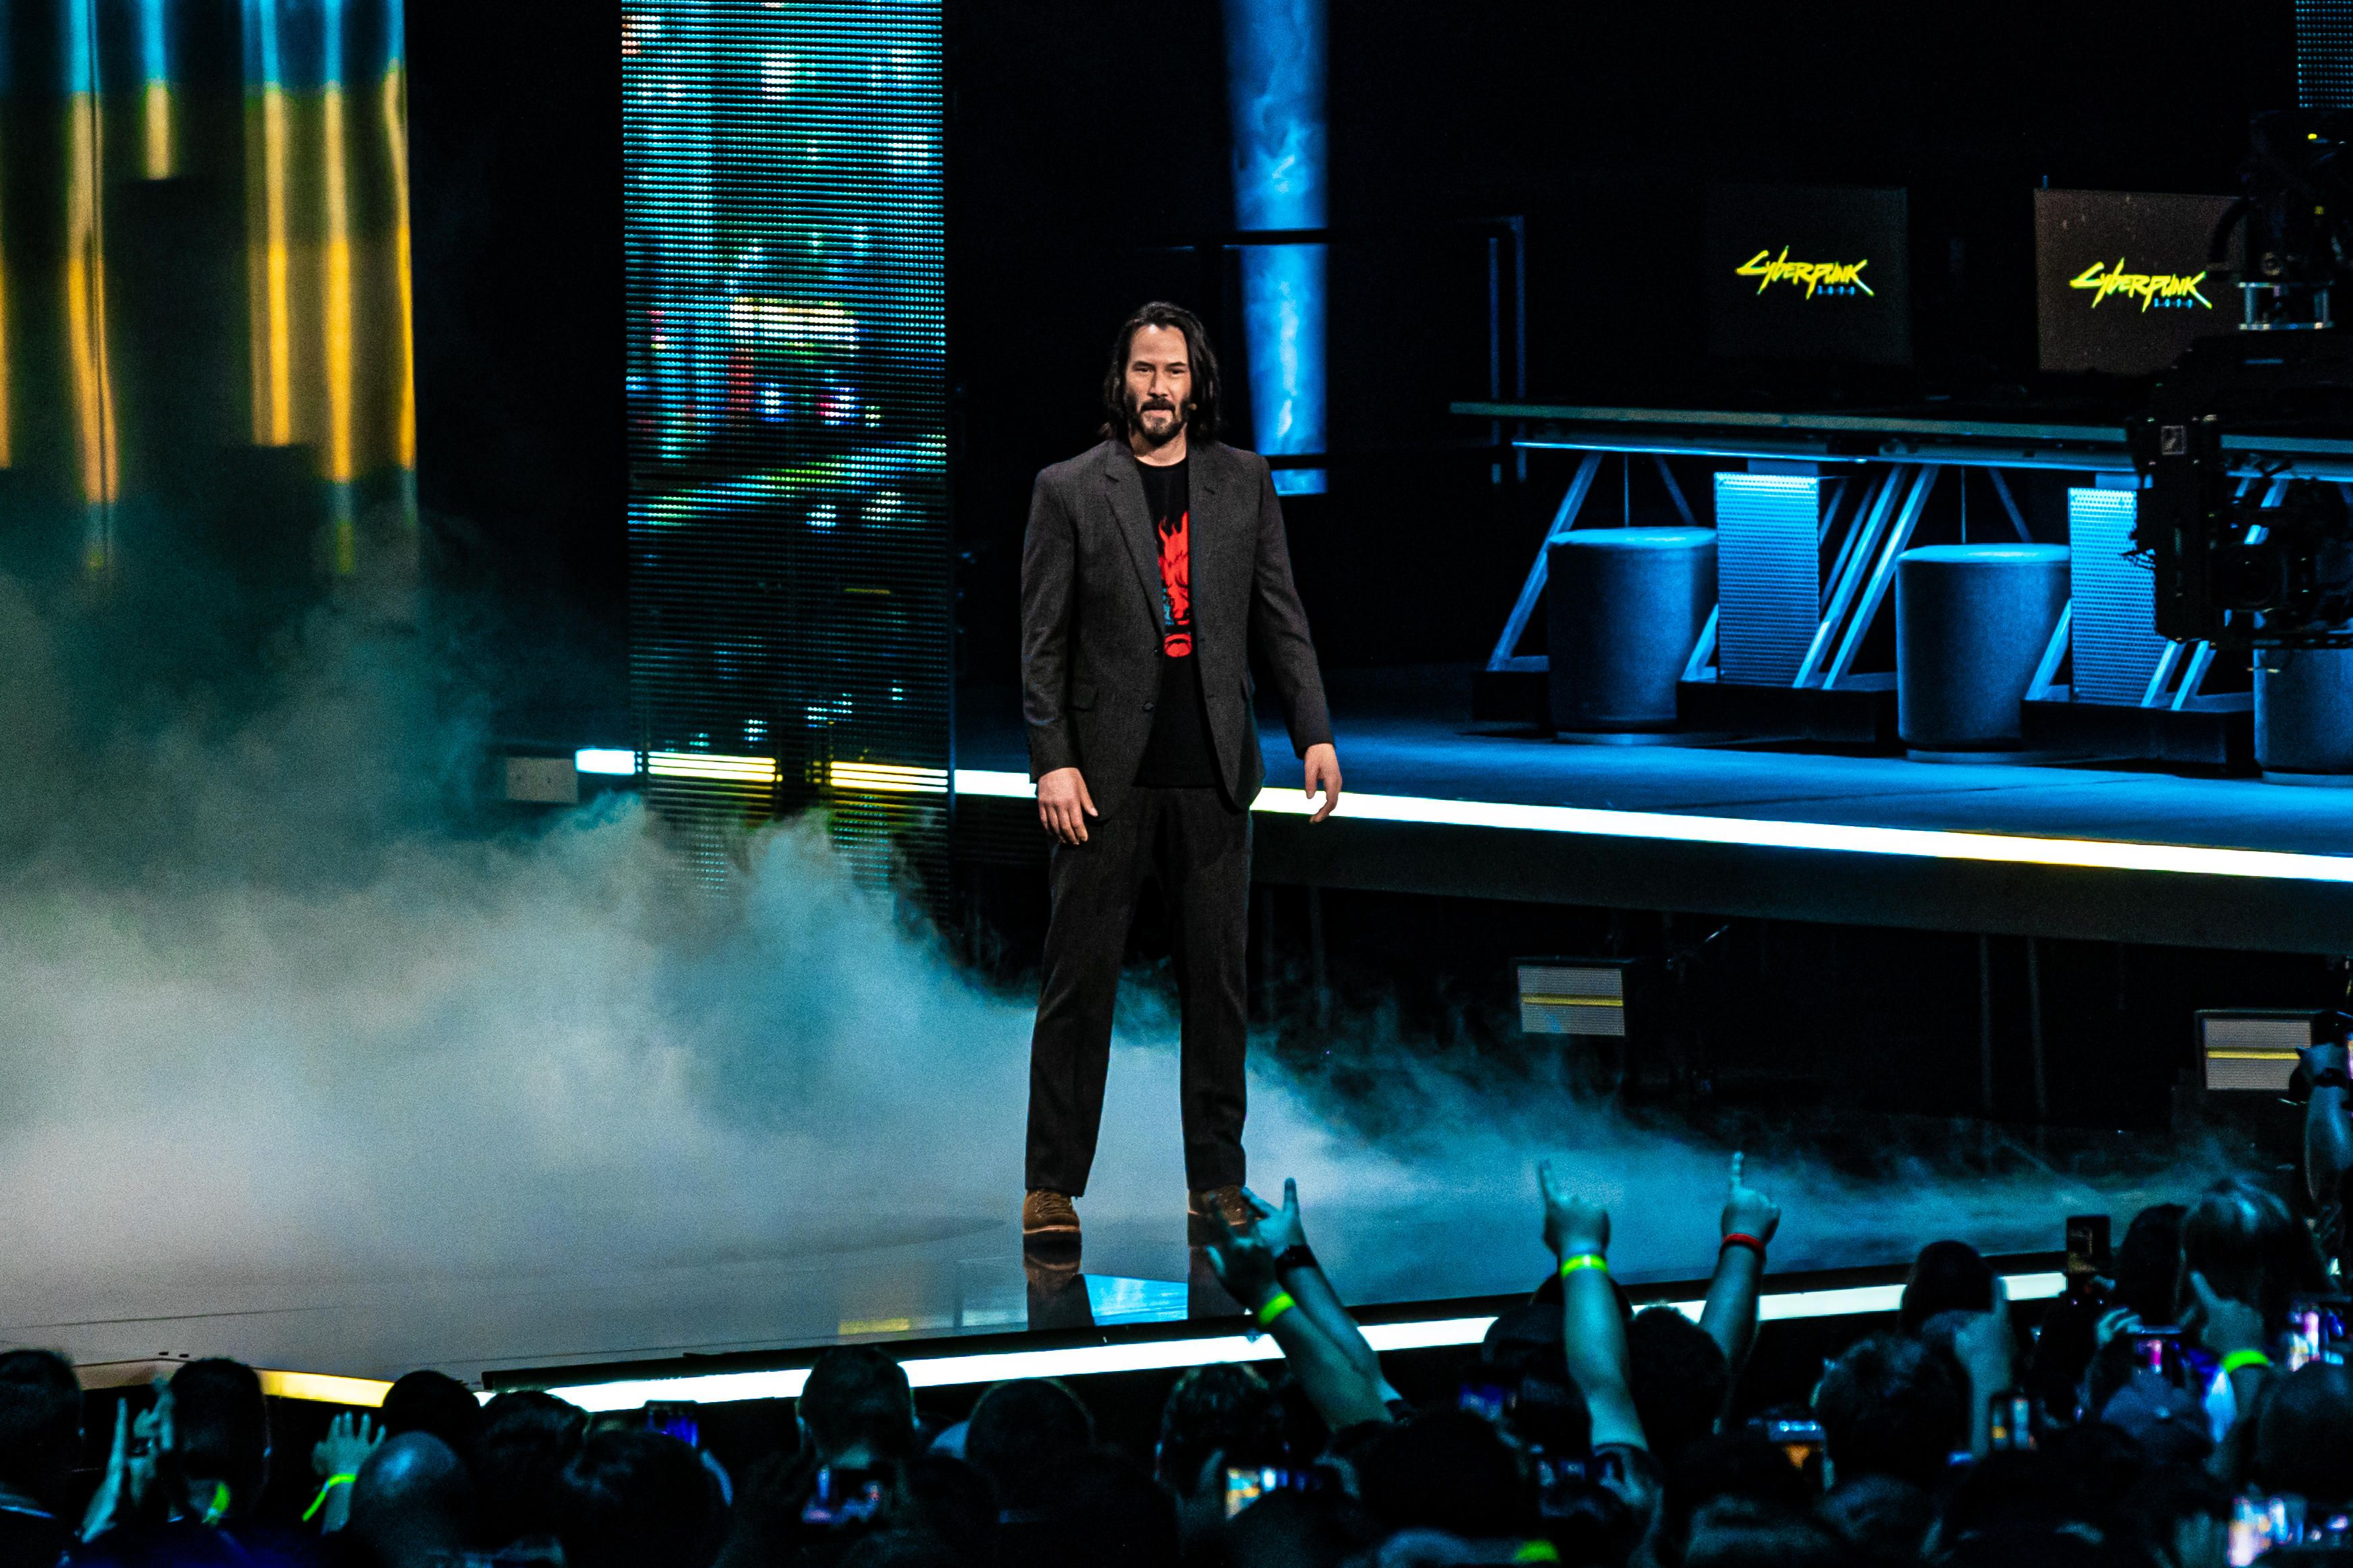 Keanu Reeves to star in Cyberpunk 2077